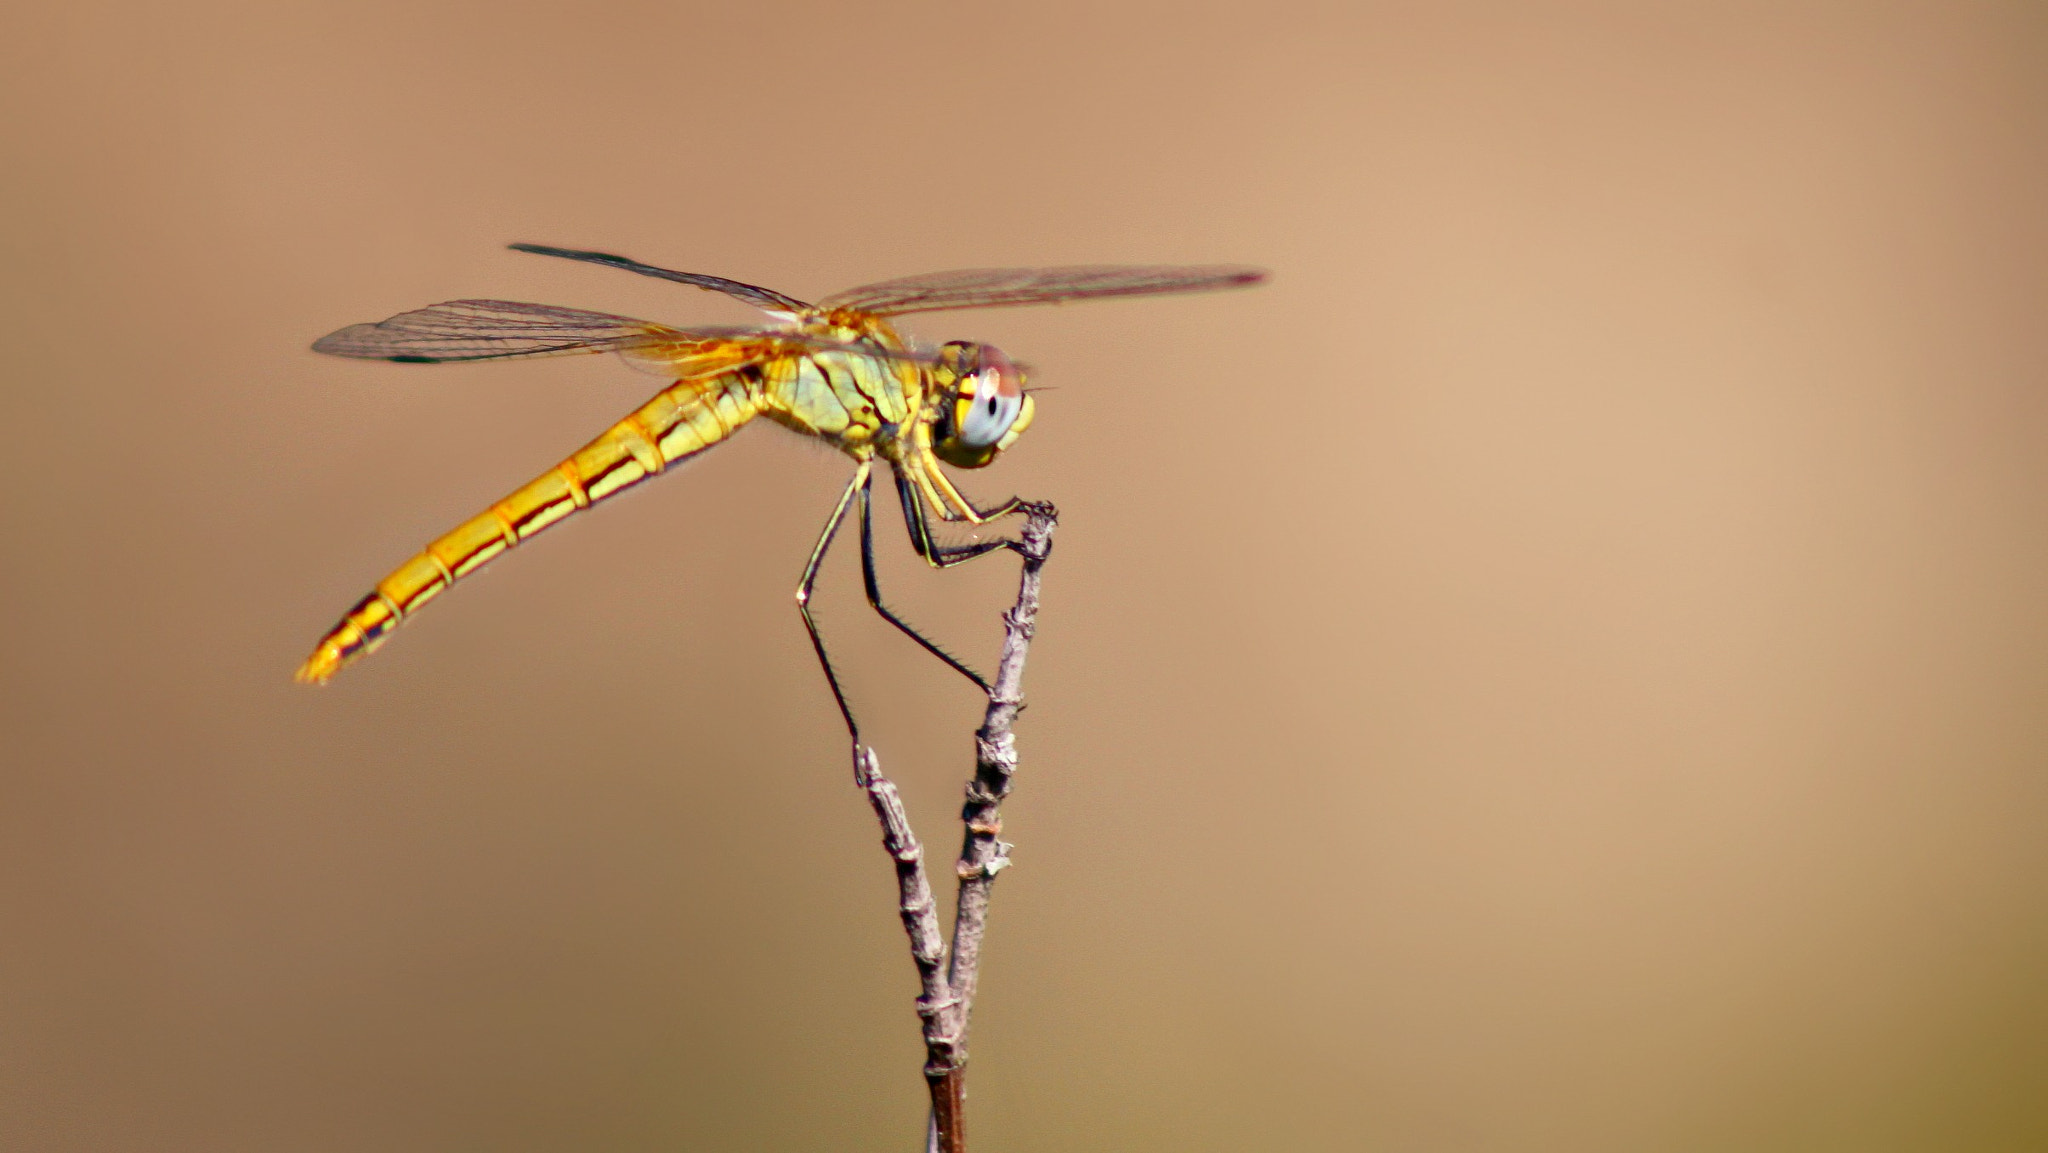 Photograph Dragonfly by Sandrine Fernandes on 500px